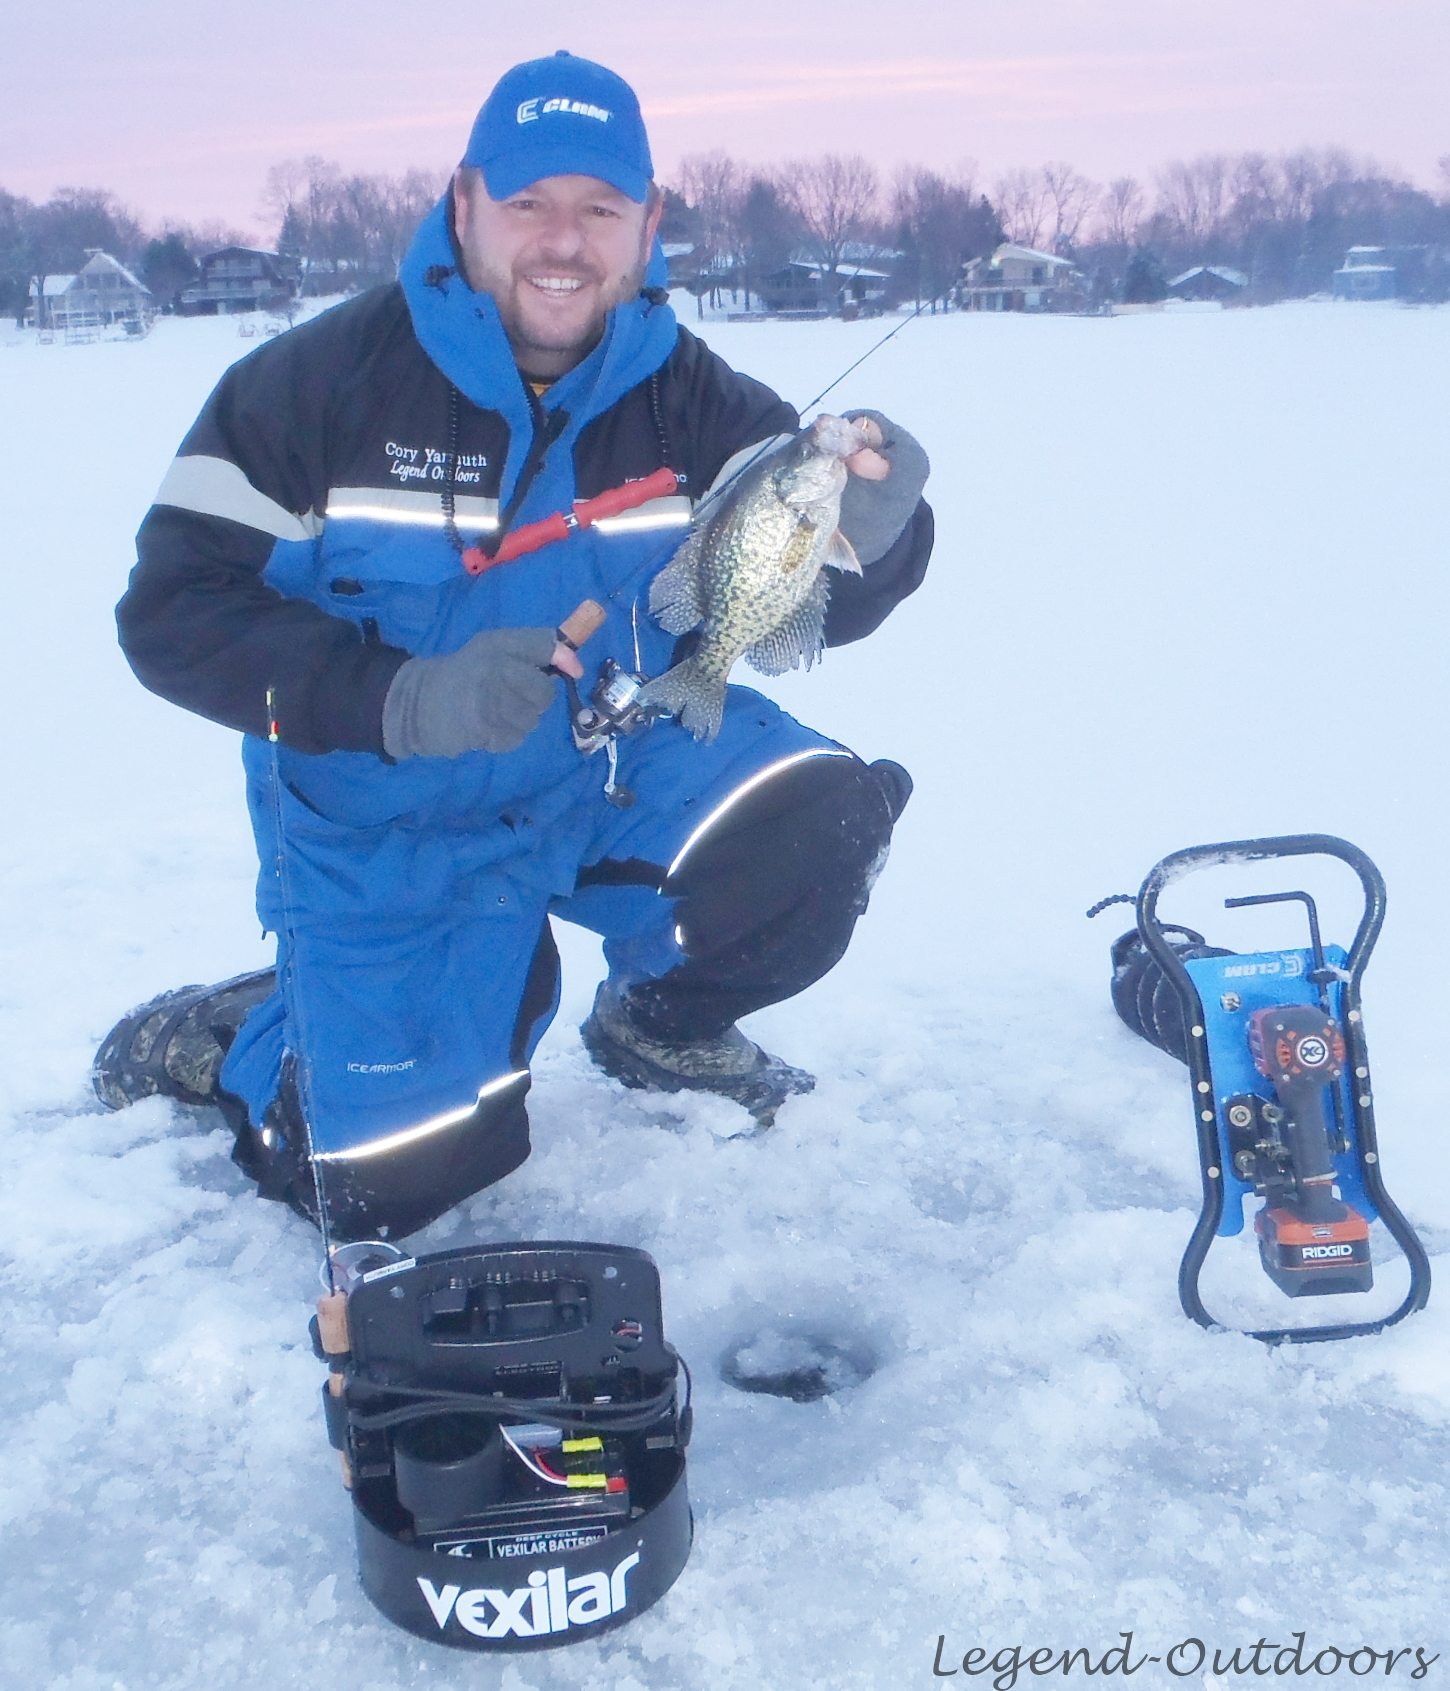 Mobility On the Ice, The Way To Stay On Fish